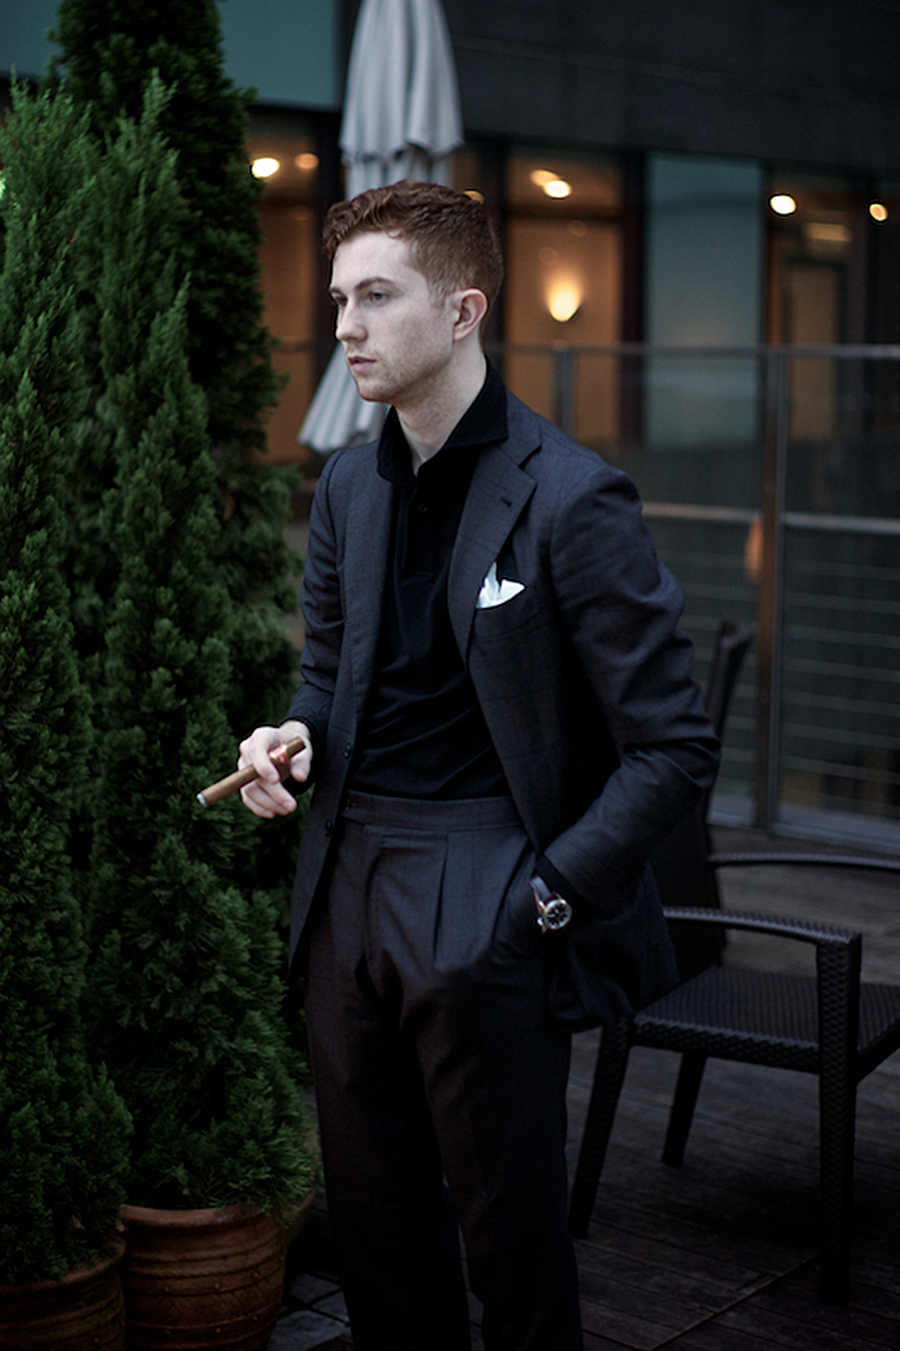 Jake-in-Black-liverano-menswear-suit-cigar-smoking.jpg